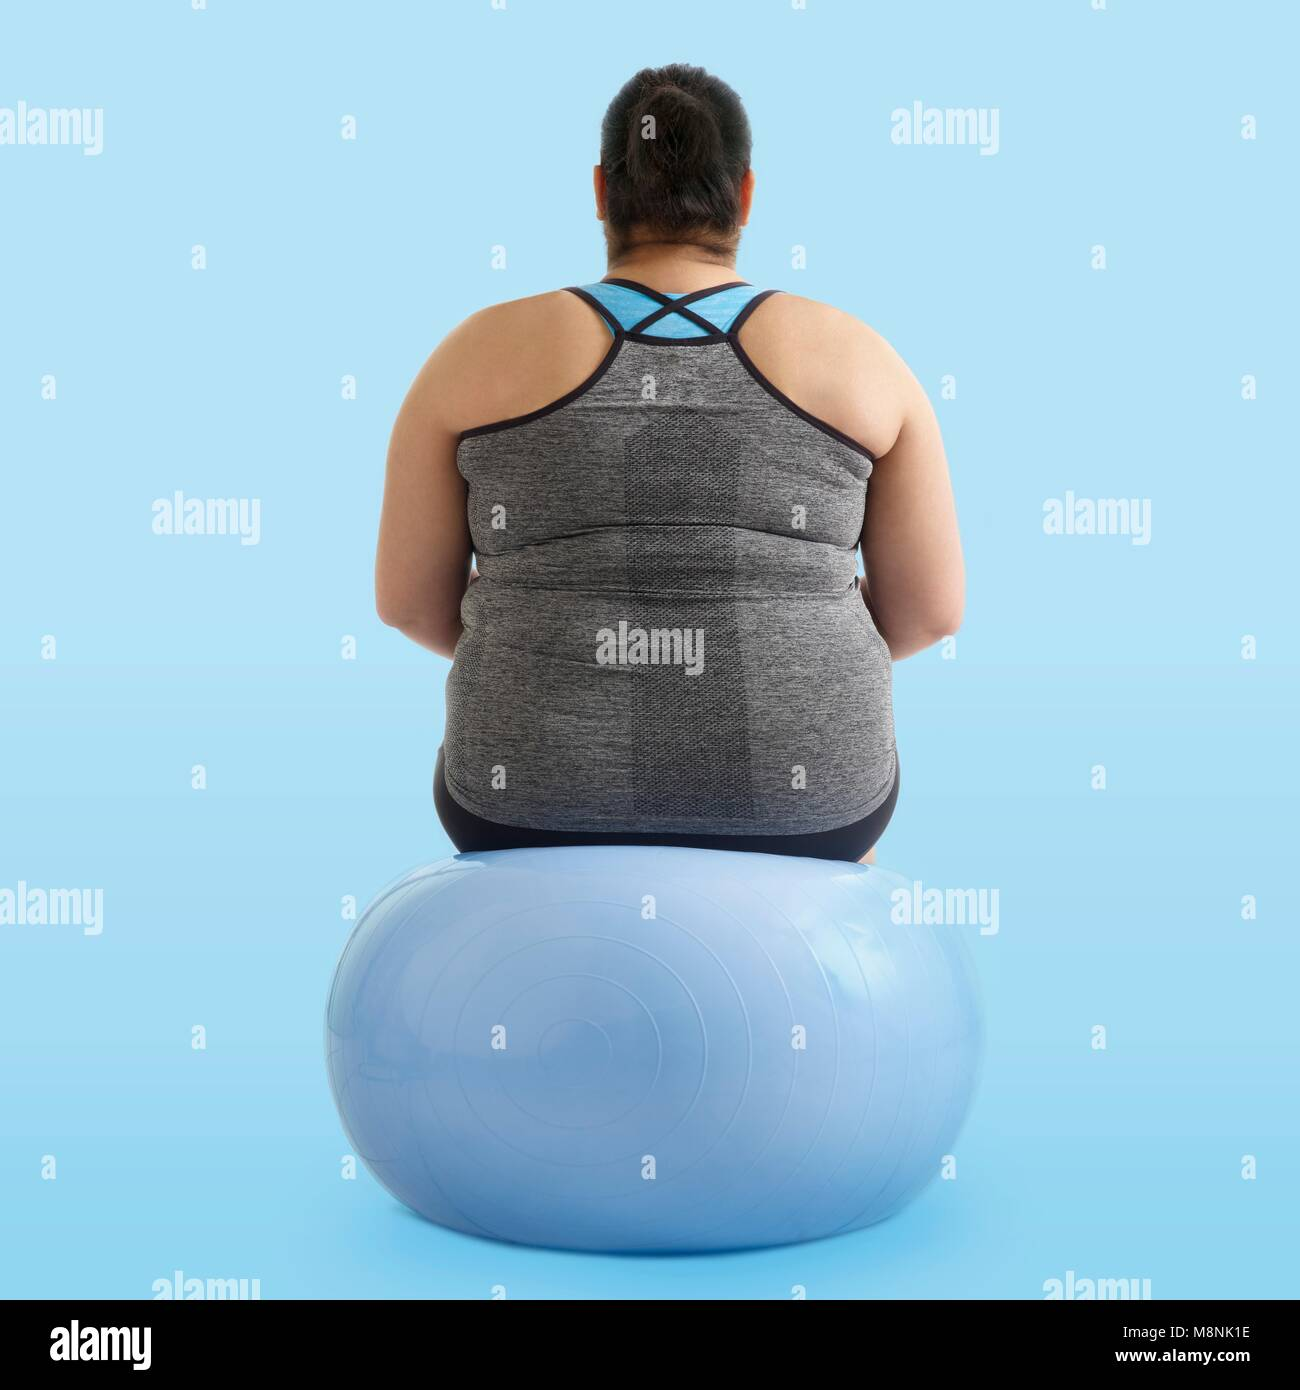 Overweight woman sitting on an exercise ball, rear view. - Stock Image